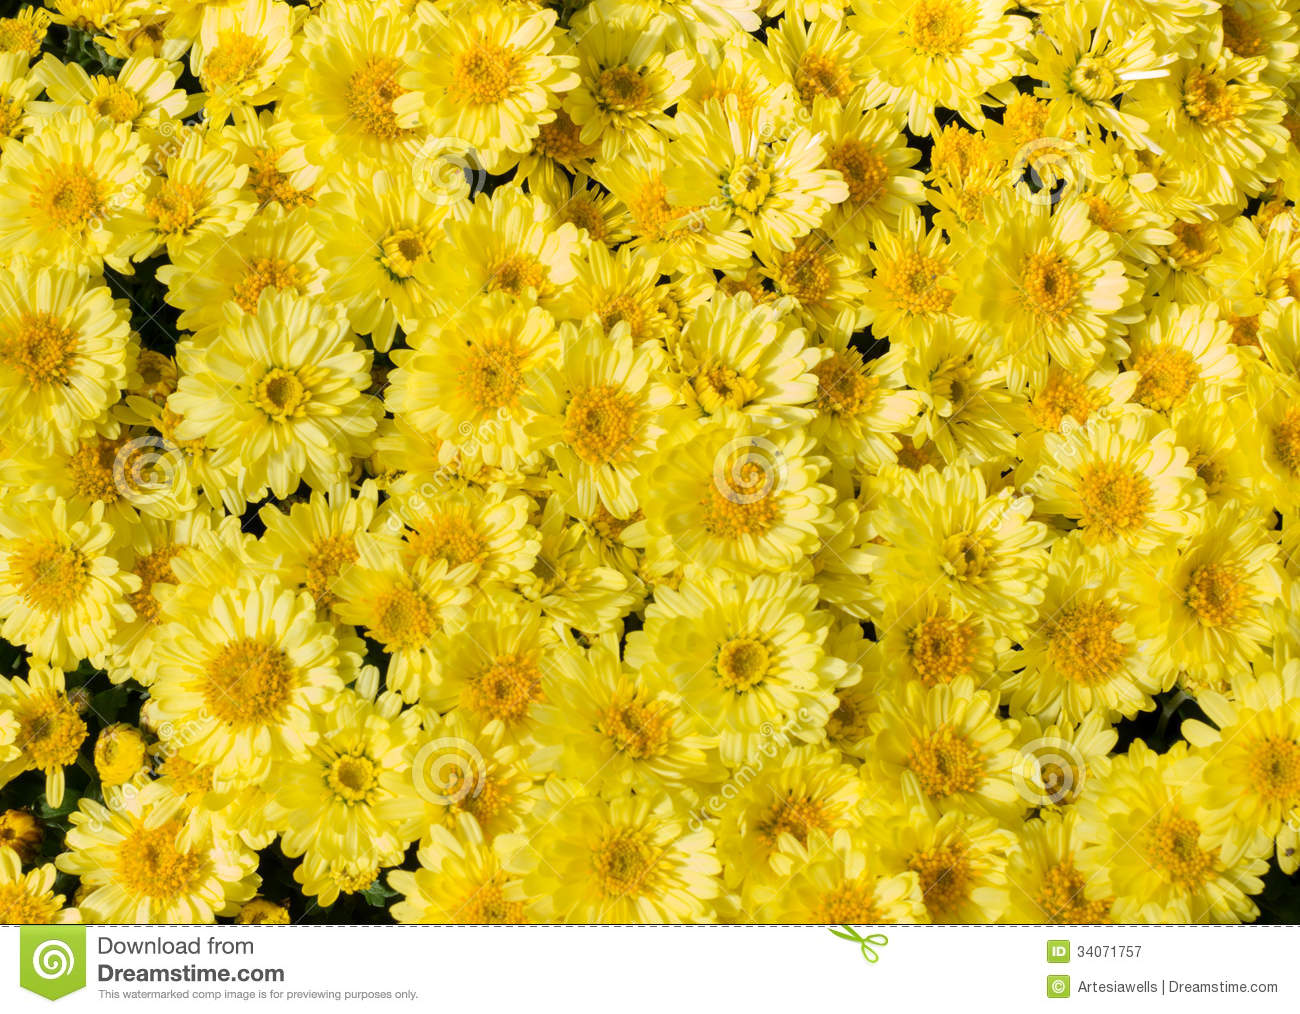 Fall Daisy Wallpaper Yellow Flower Bed Of Asters Royalty Free Stock Photography